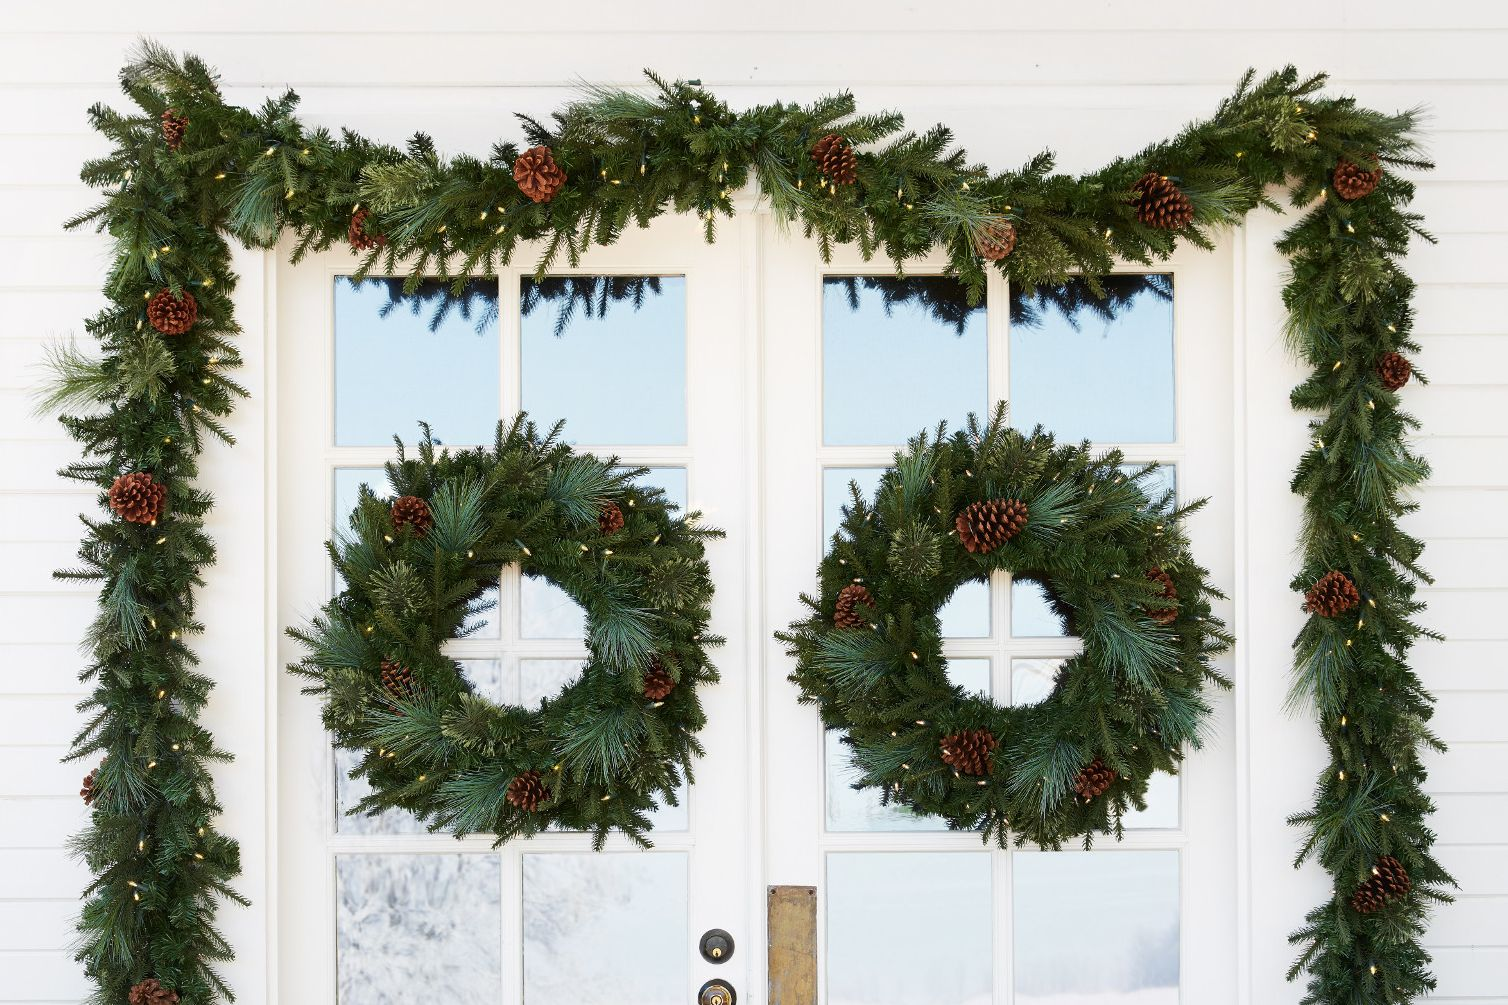 decorated greenery wreaths and garlands on a white front door